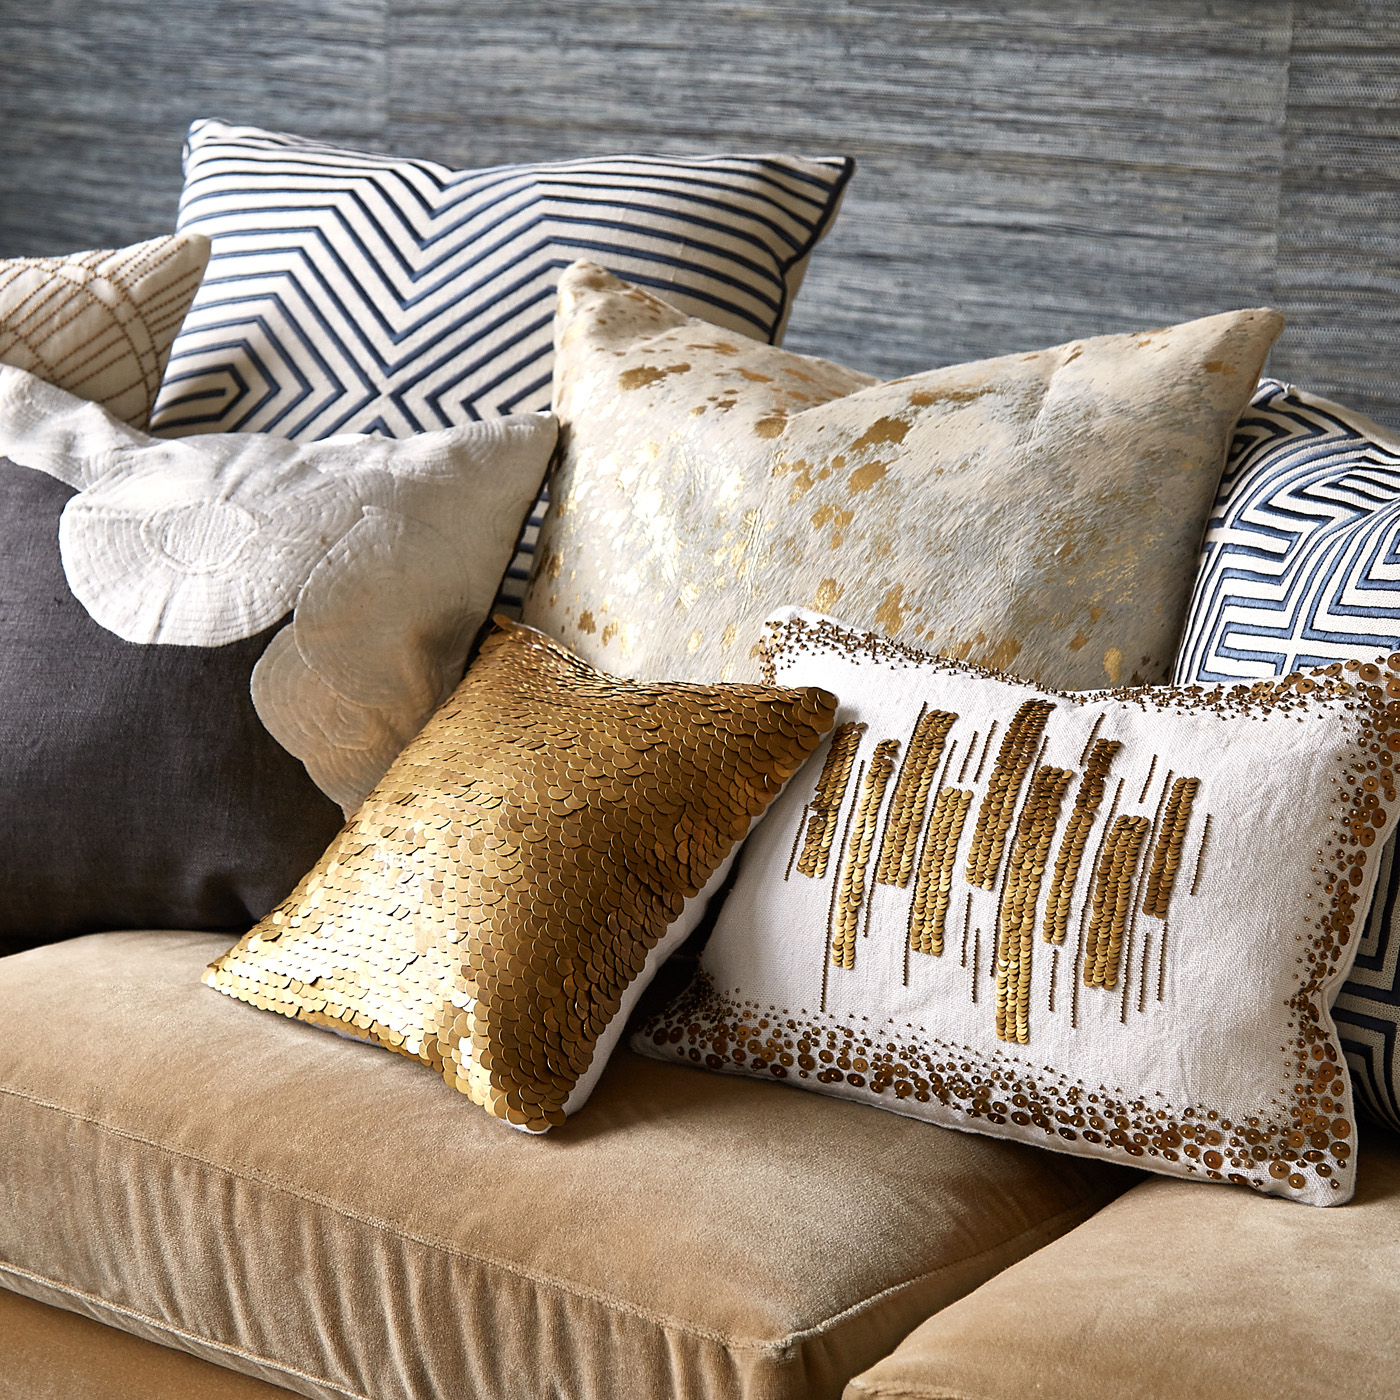 Throw Pillow Tips For Decorating Your Home And Adding Comfort